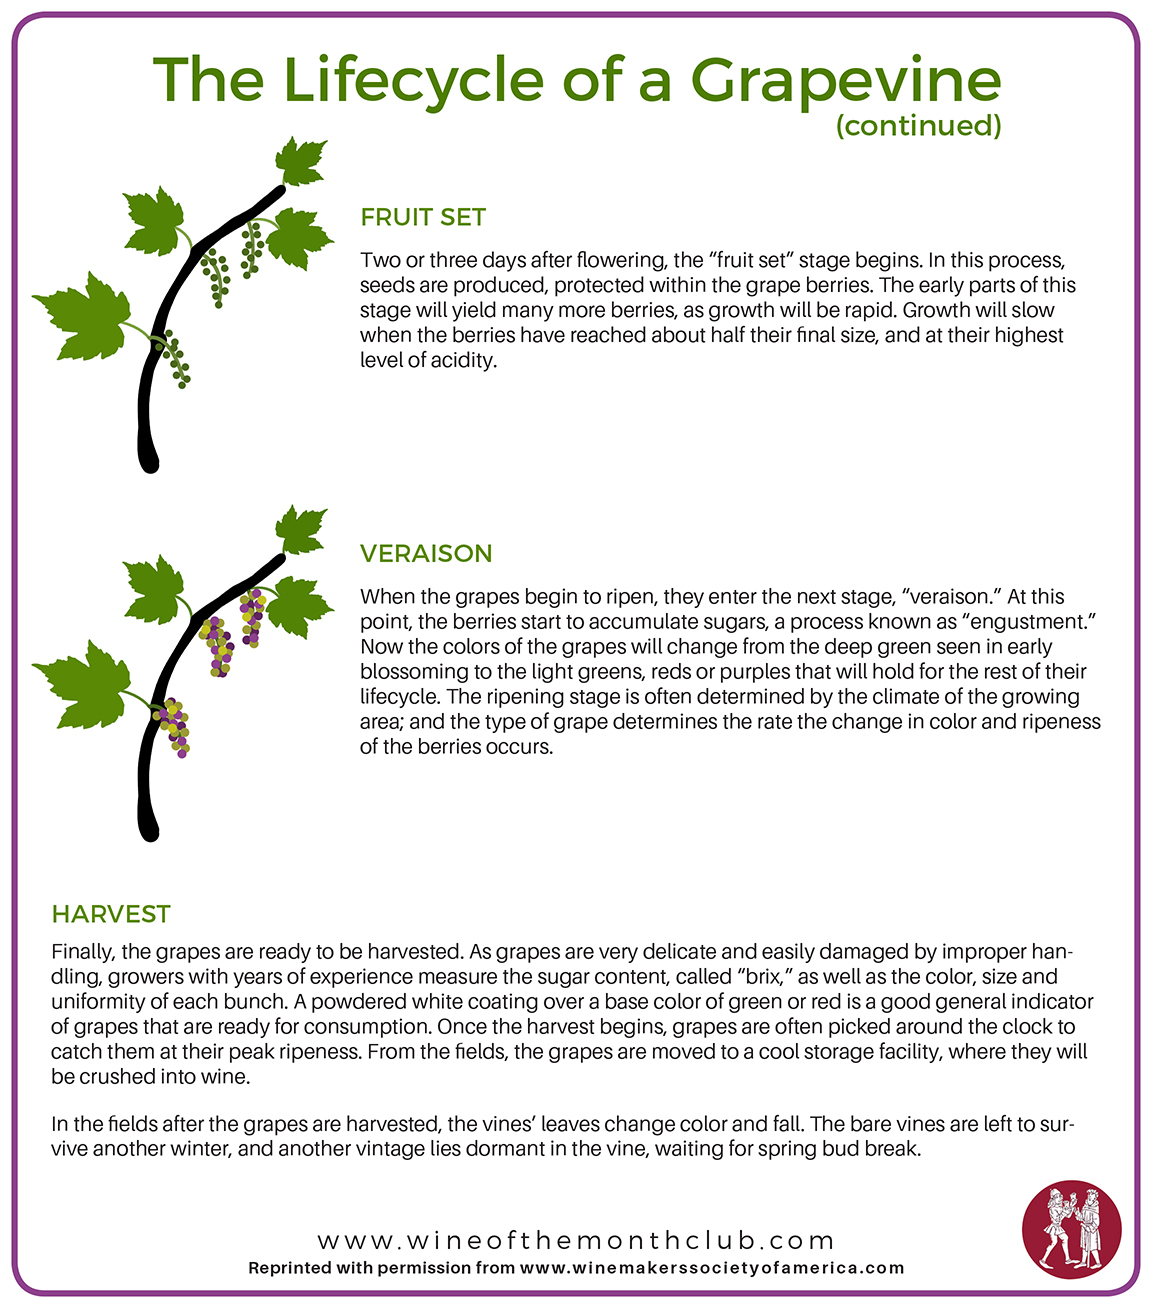 Grapevine Lifecycle